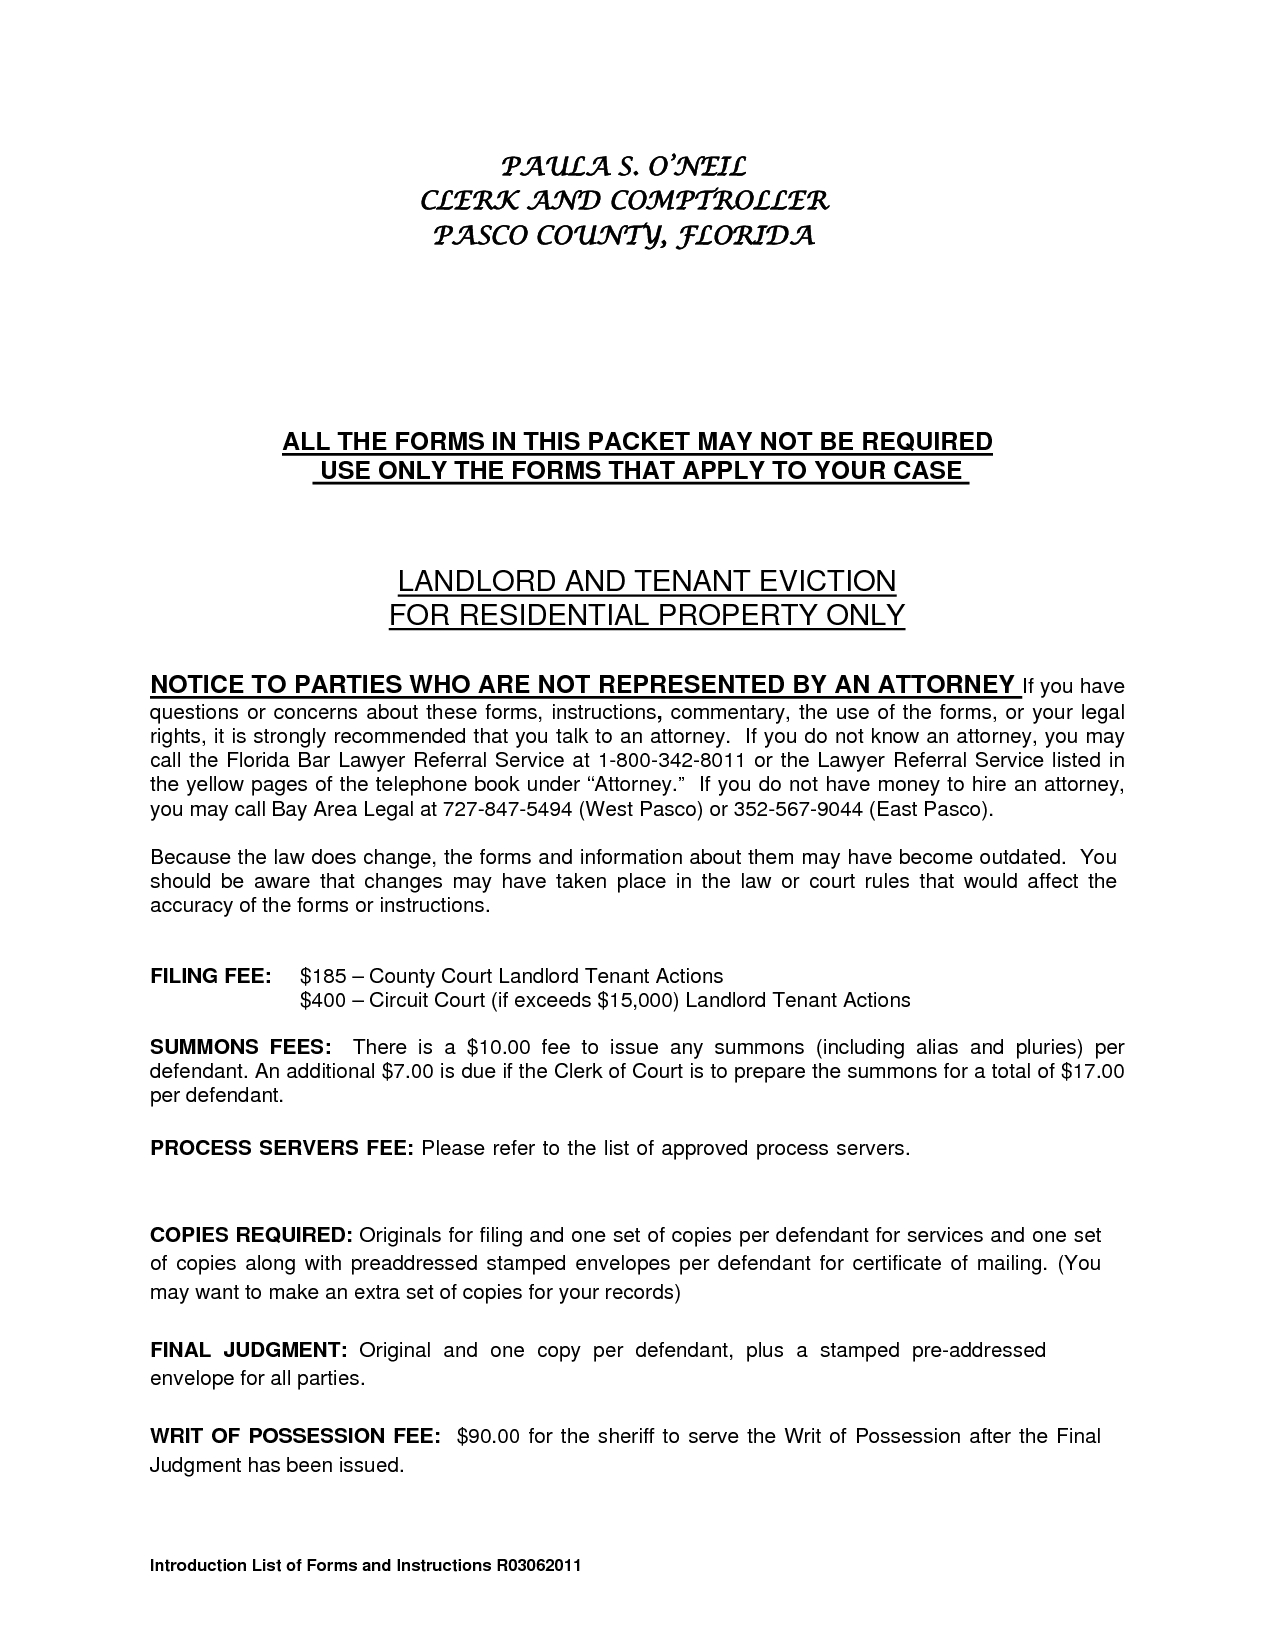 Tenant Eviction Letter Template - Residential Landlord Tenant Eviction Notice form by Ere